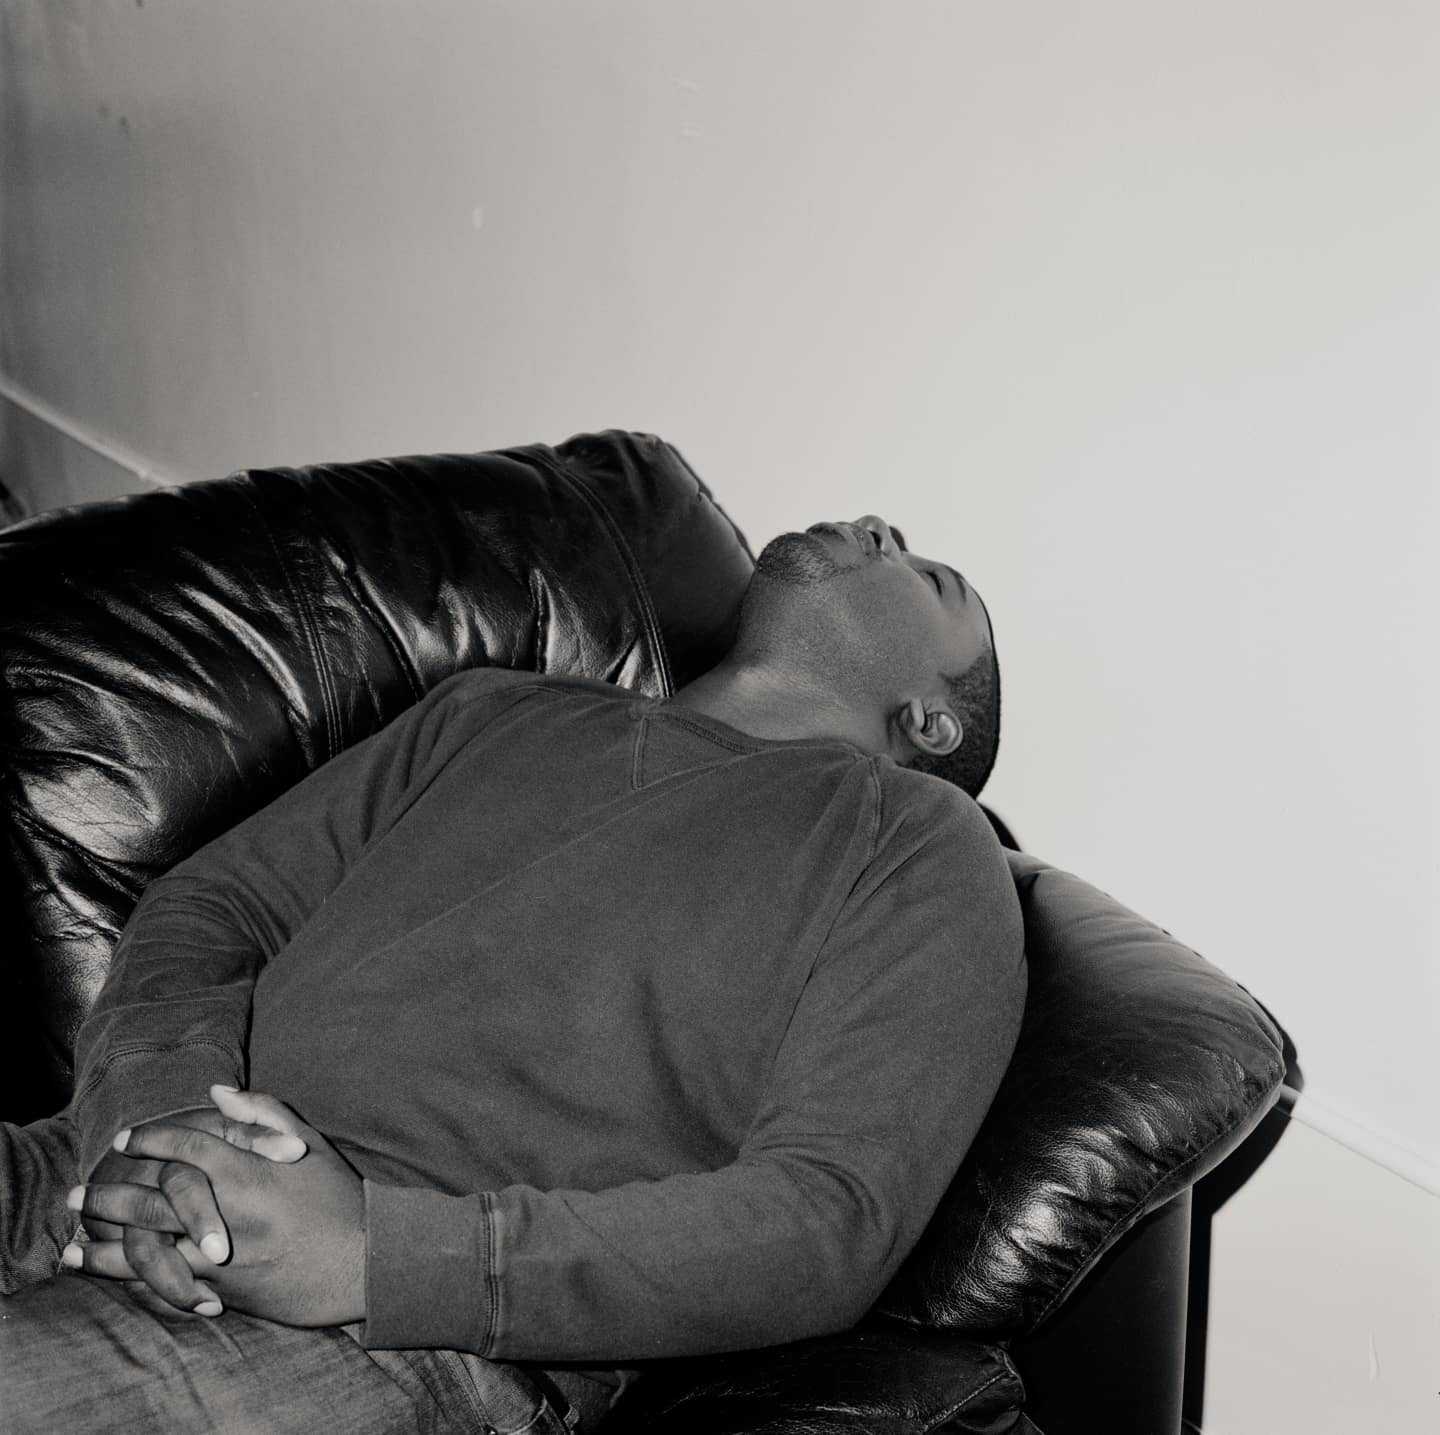 On The Road With Hannibal Buress, Comedy's Most Respected